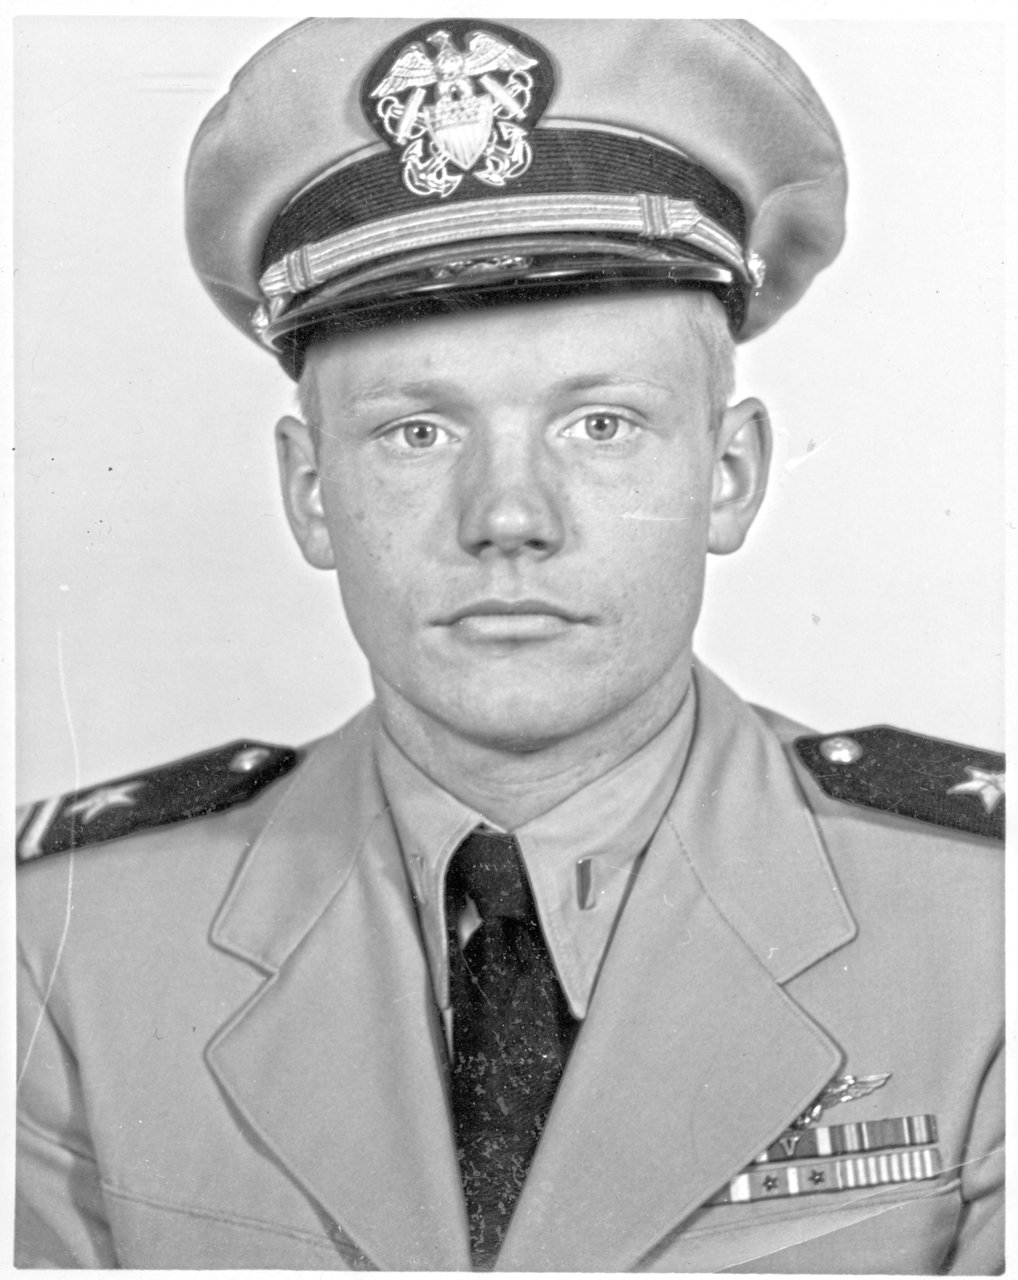 Neil Armstrong in United States Navy uniform, 1951